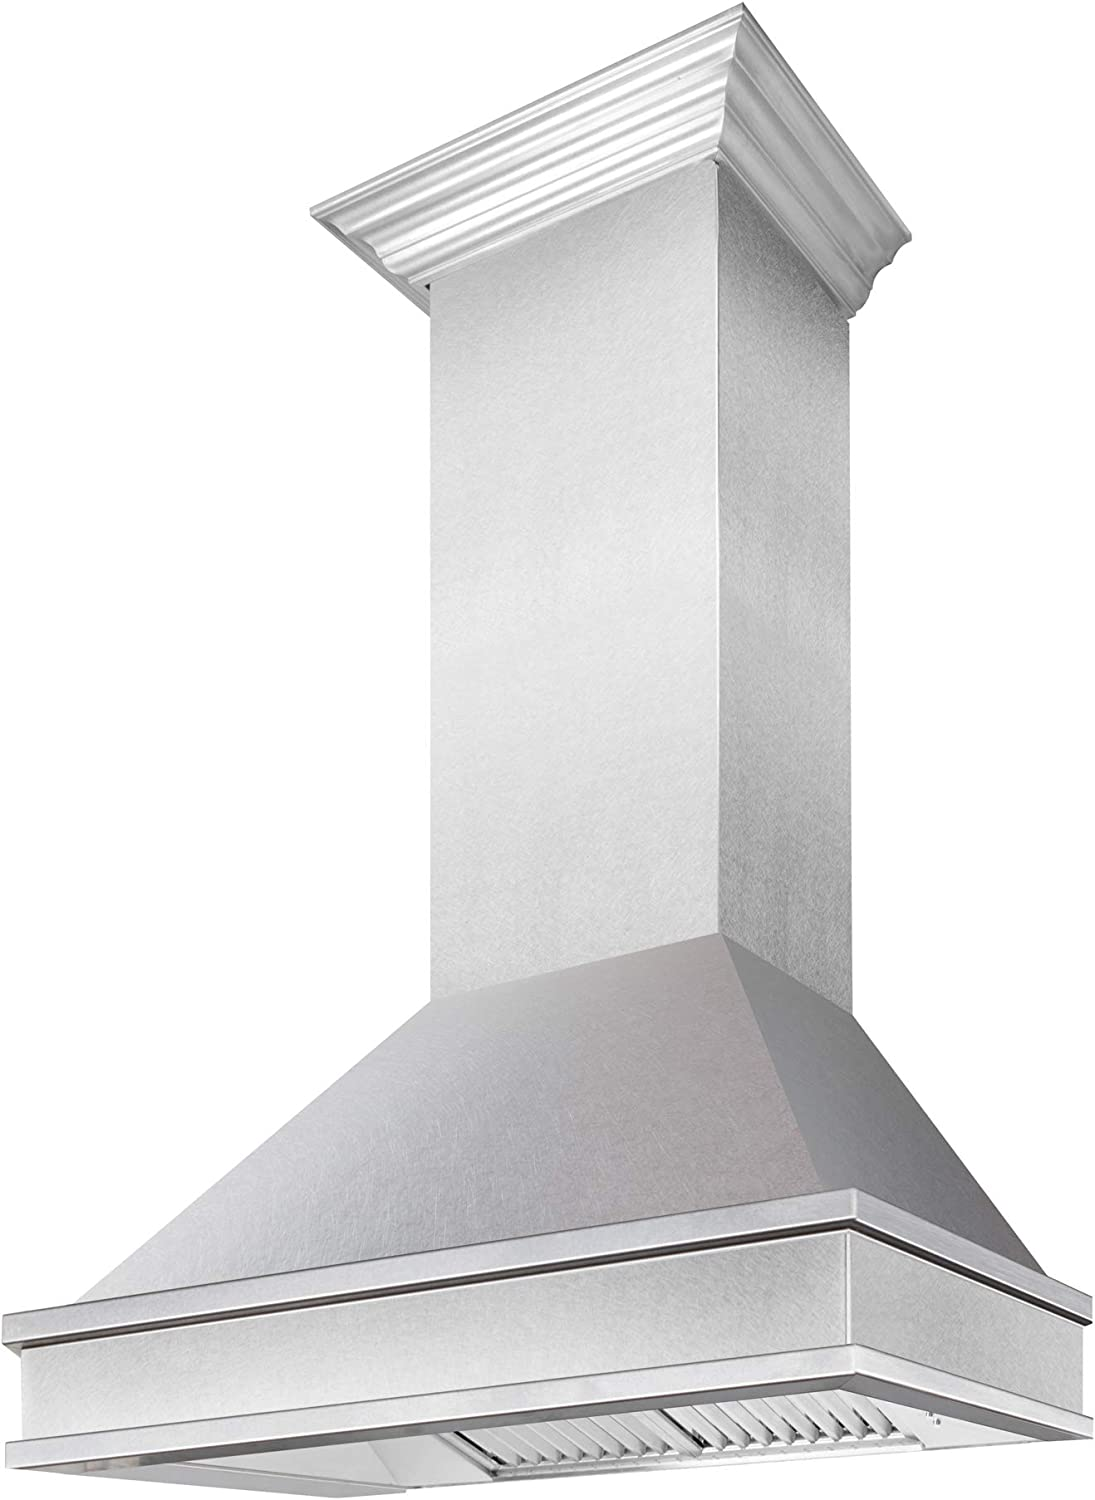 ZLINE 30 in. Designer Series Wall Mount Range Hood (8656S-30)